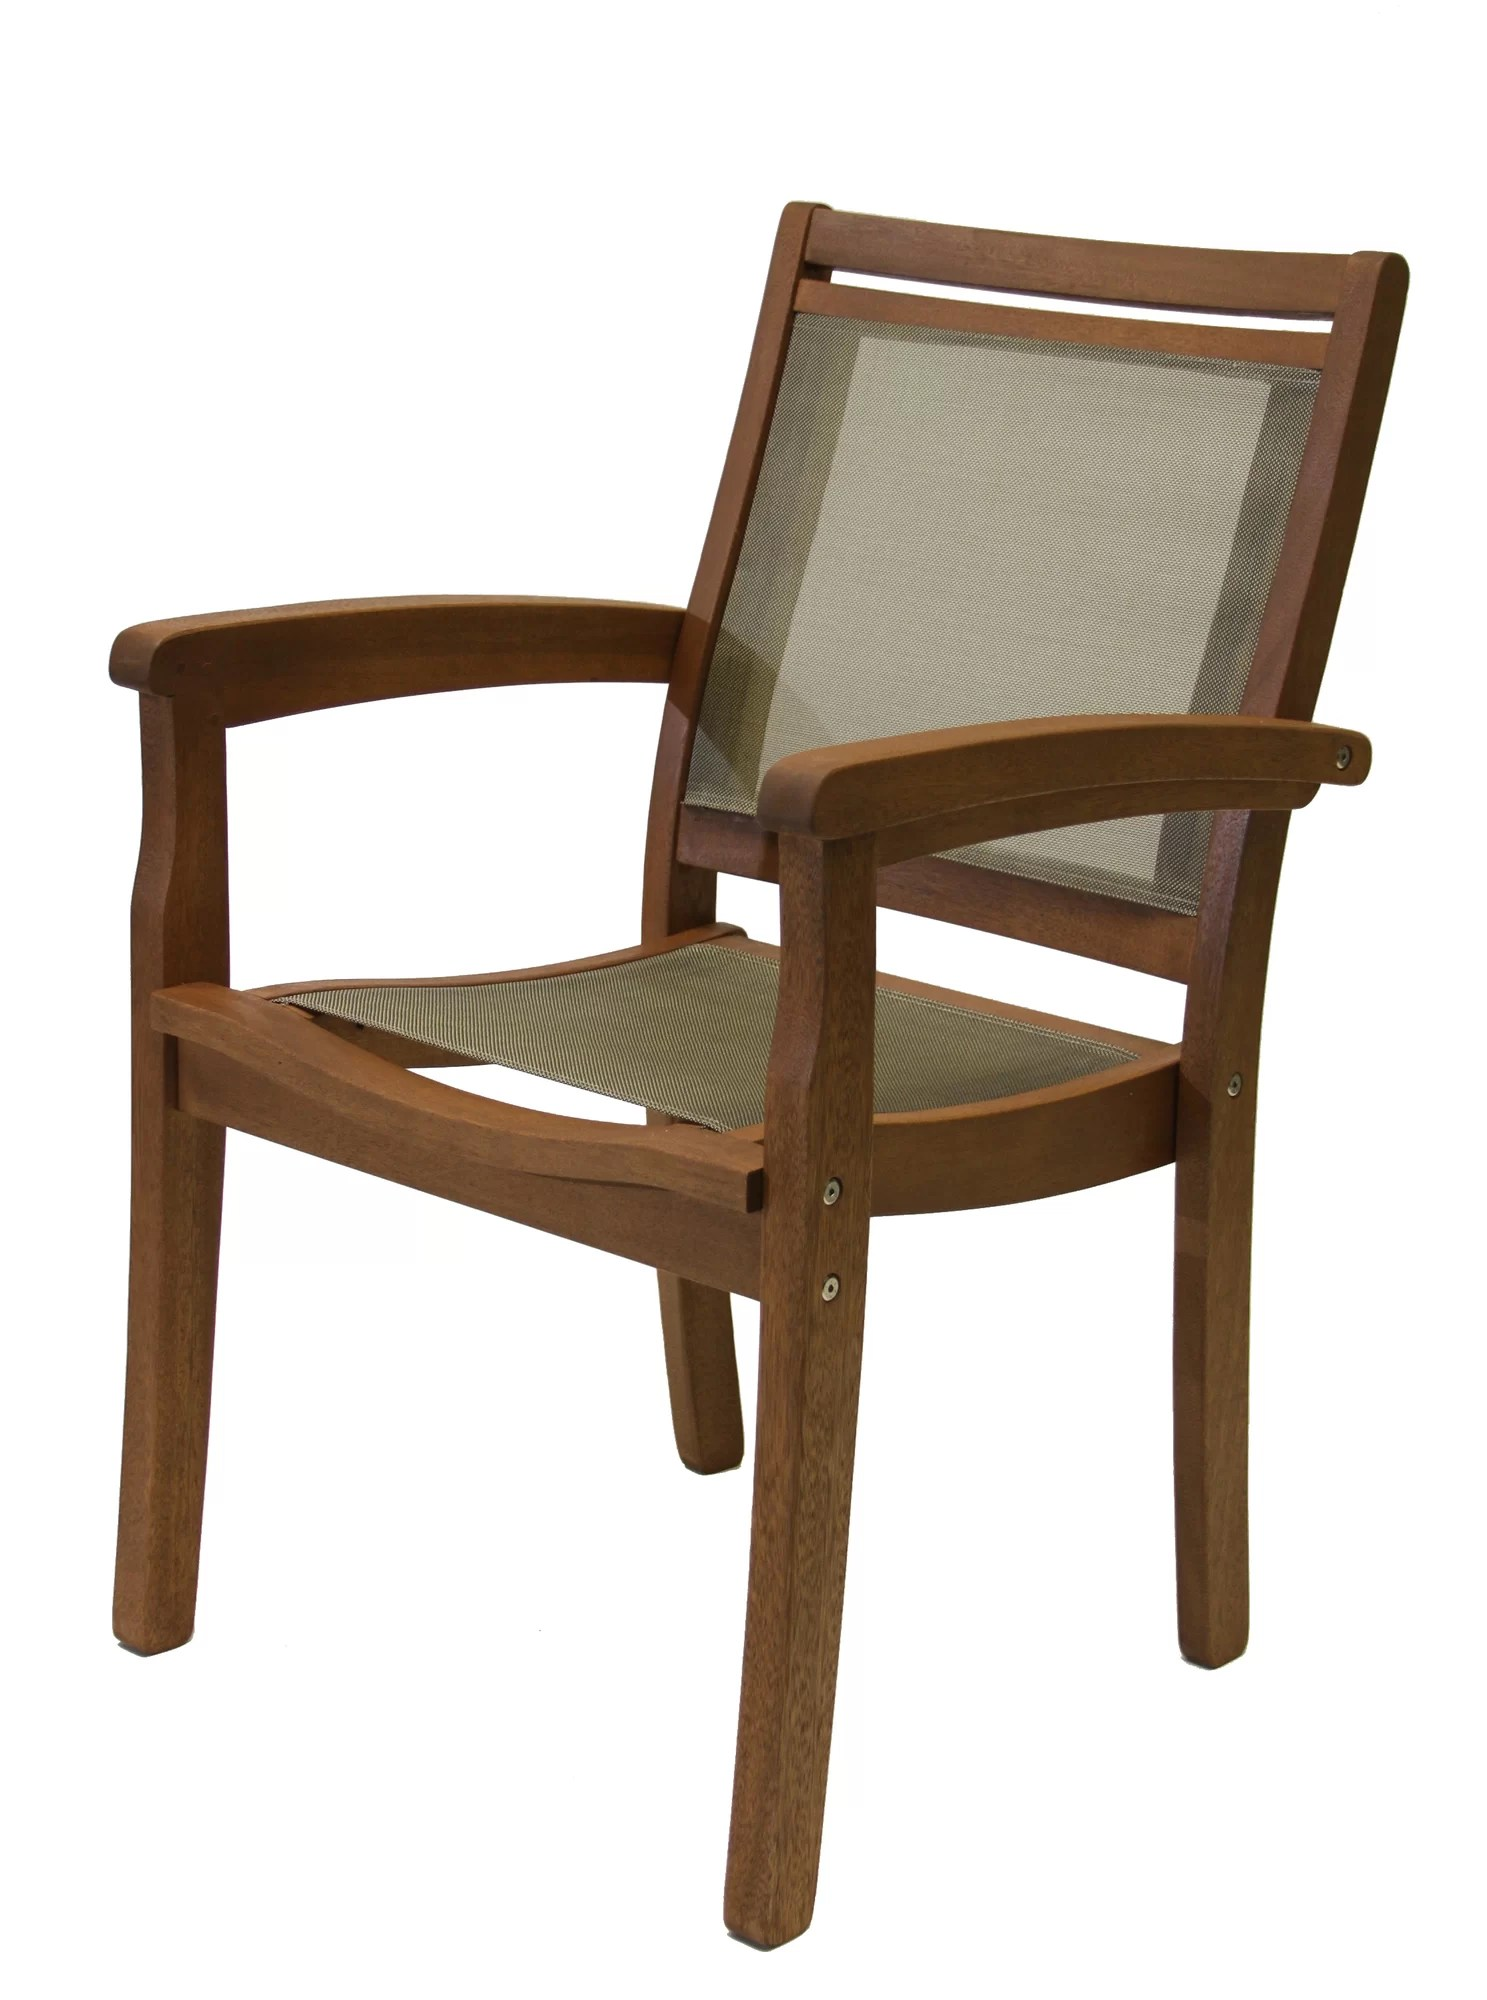 Sling Stacking Chair Questions And Answers About This Item